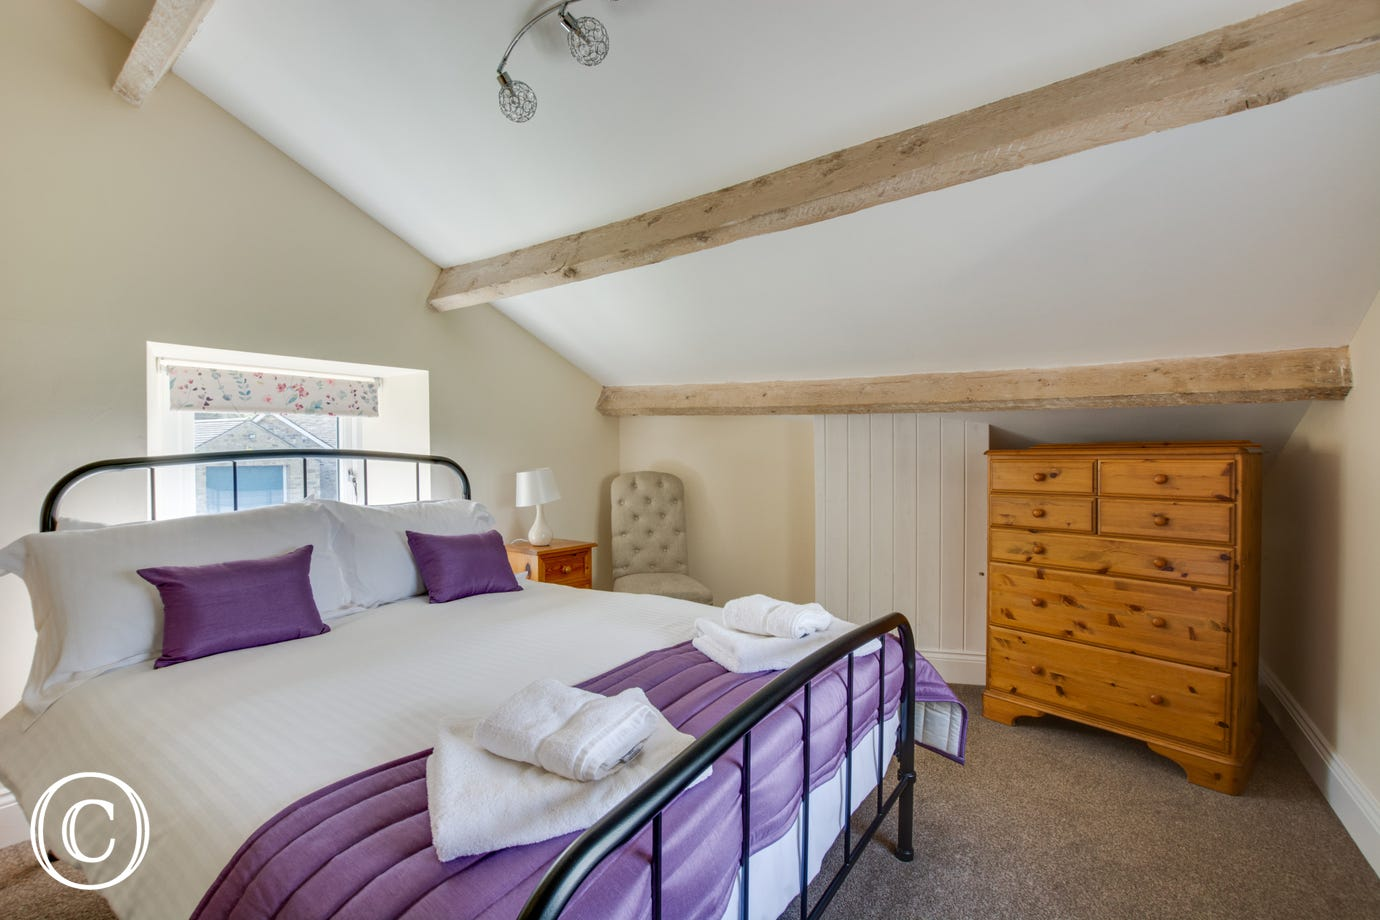 Double bedroom with beamed ceiling and views over the beautiful Wensleydale countryside